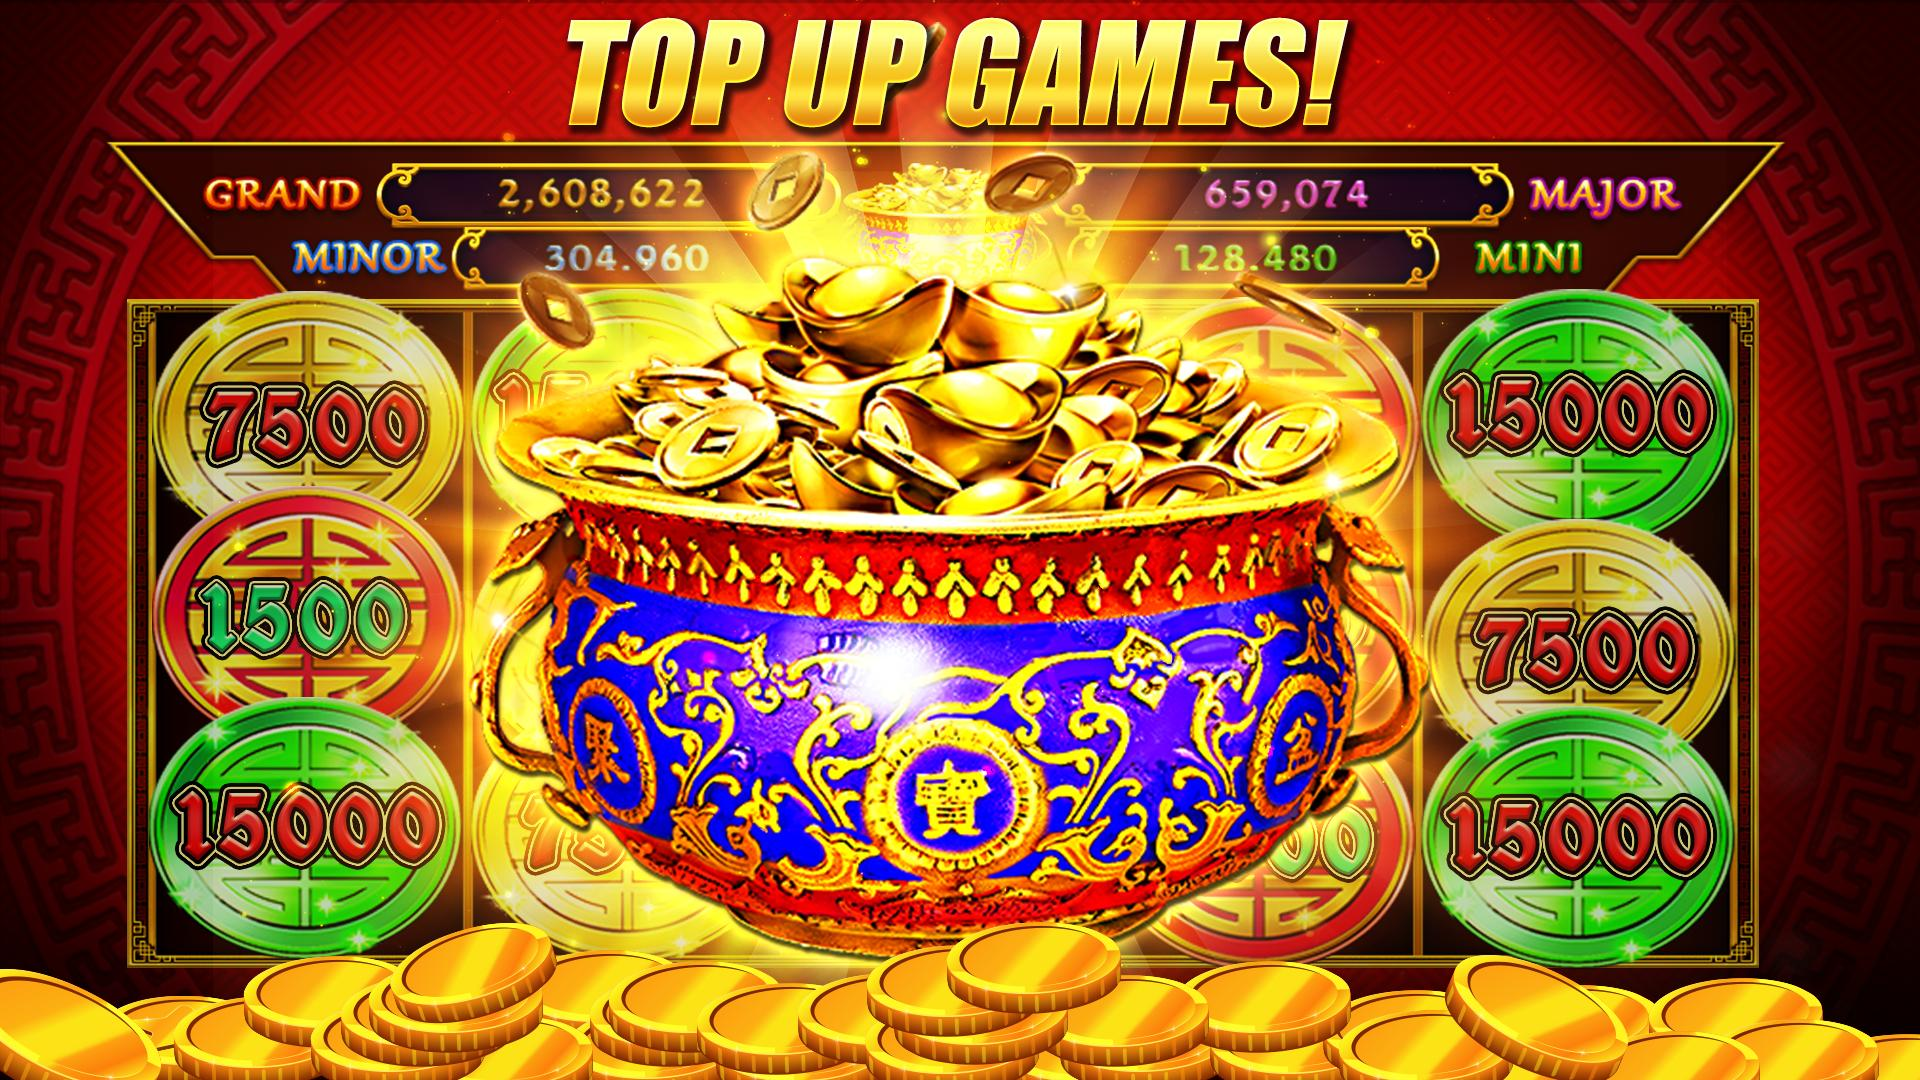 Grand Jackpot Slots Pop Vegas Casino Free Games 1.0.44 Screenshot 10